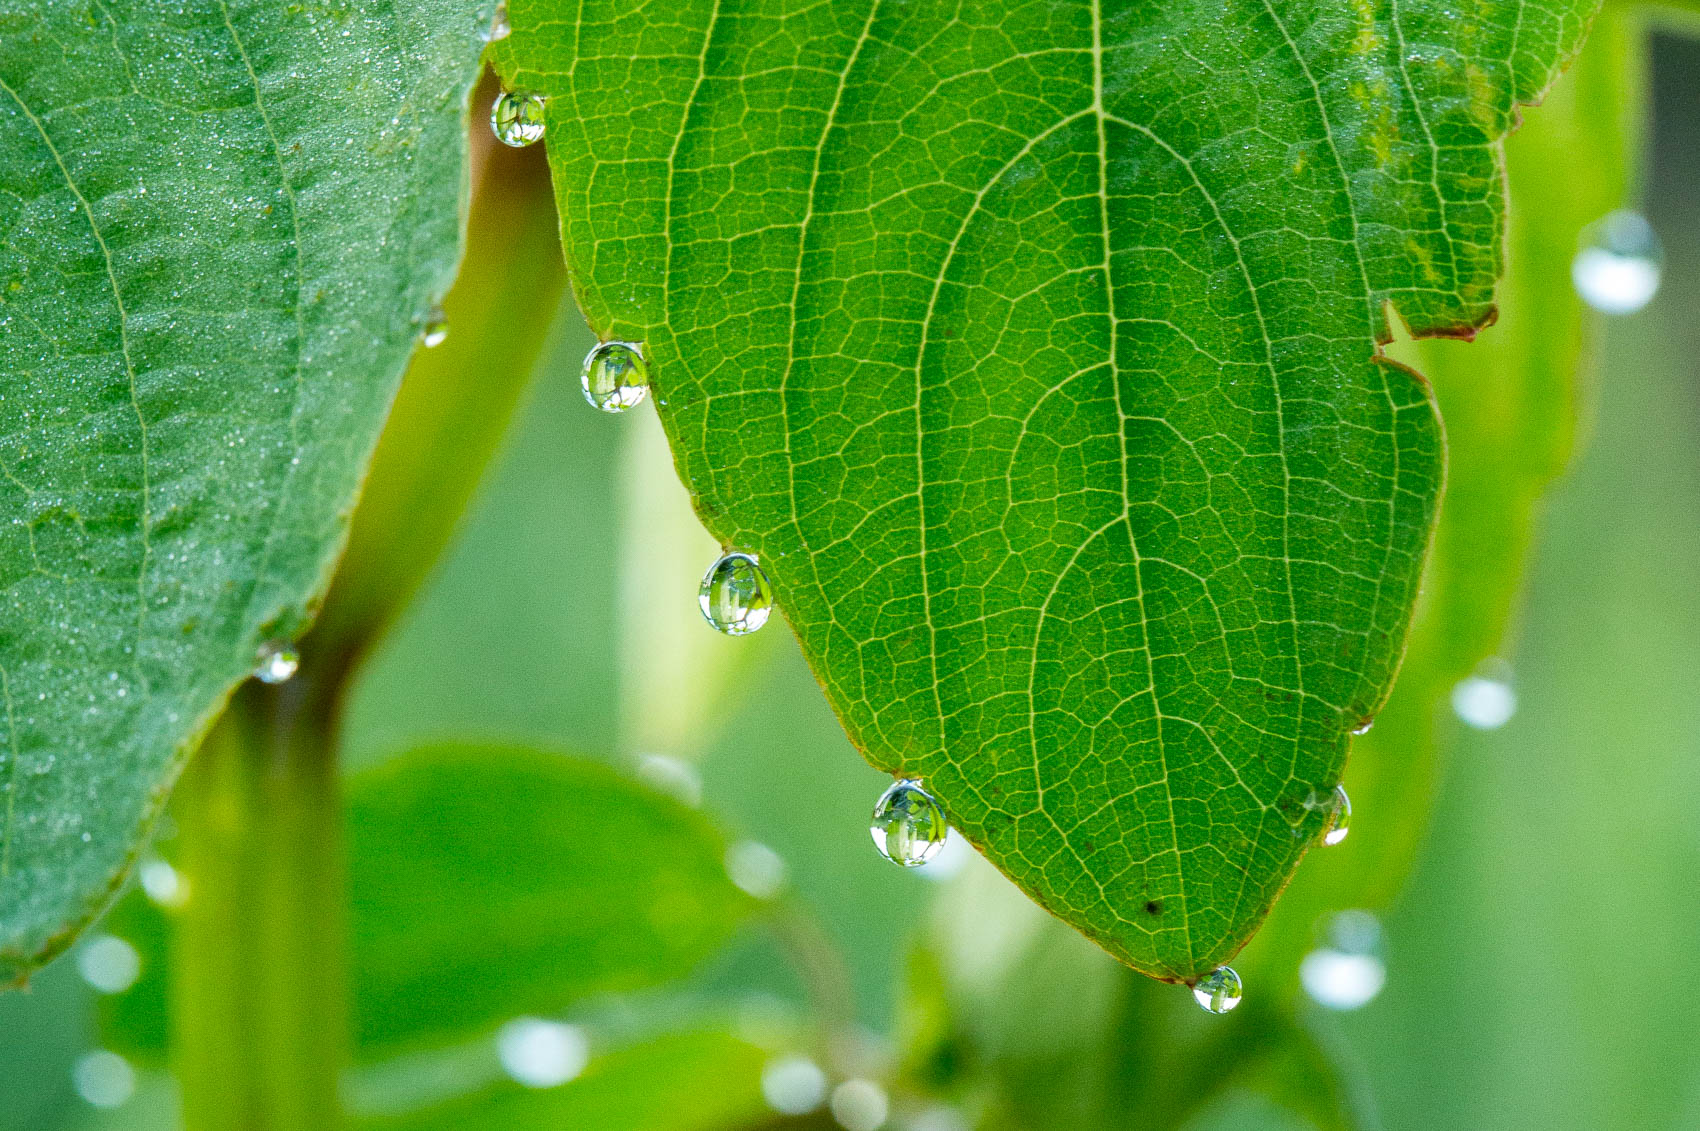 water droplets on jewelweed